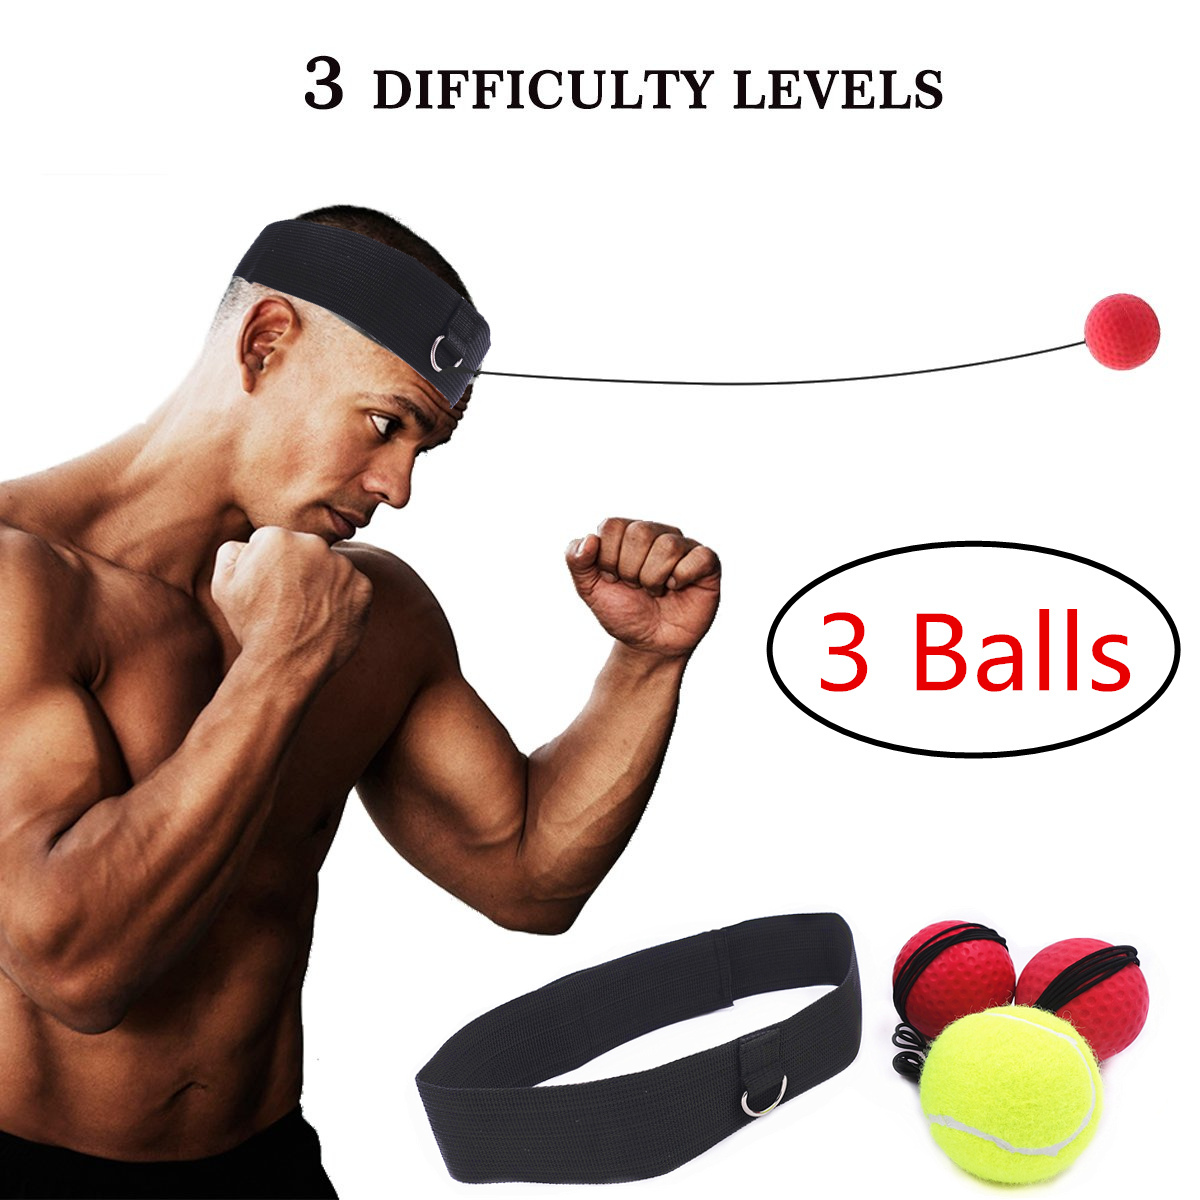 Boxing Reflex Ball Set 3 Difficulty Level Boxing Balls with Adjustable Headband for Punching Speed Reaction Agility Training 3